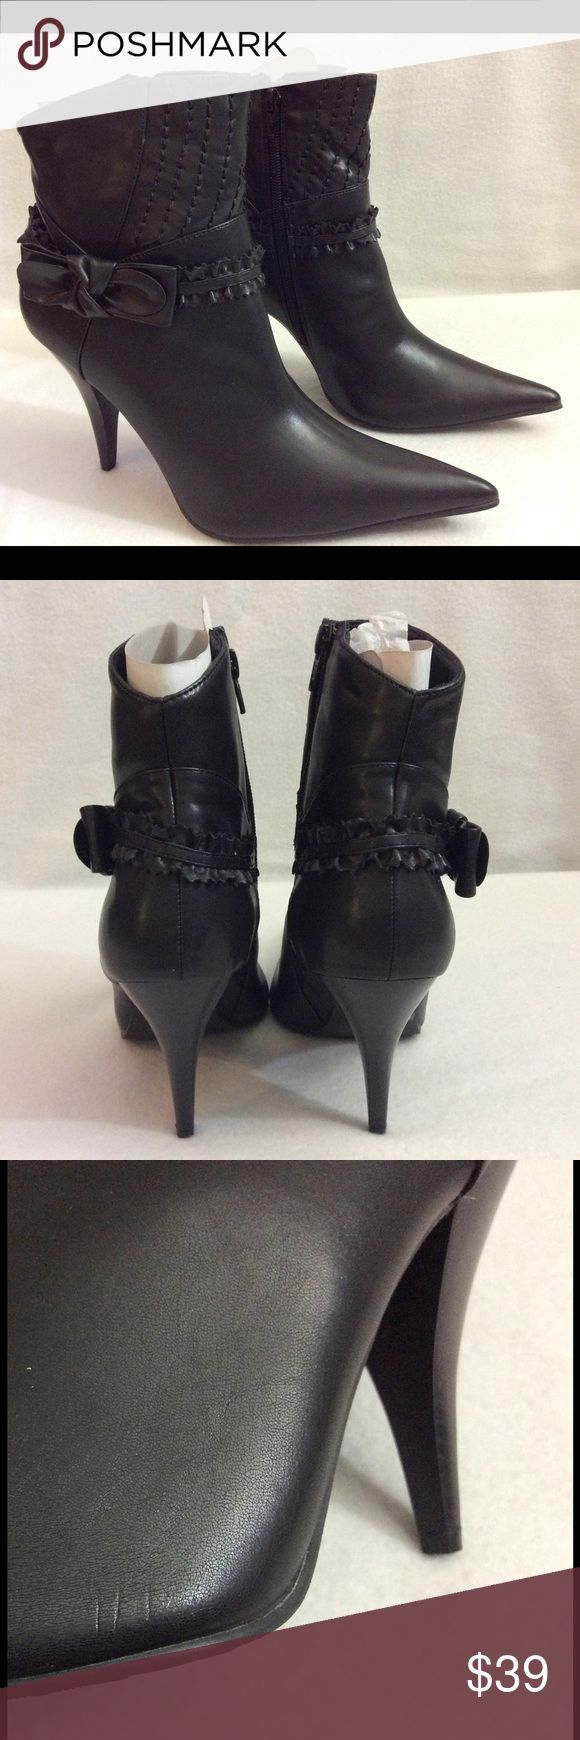 Shop Women's Lasonia Black size 9 Ankle Boots & Booties at a discounted  price at Poshmark. Man made materials.